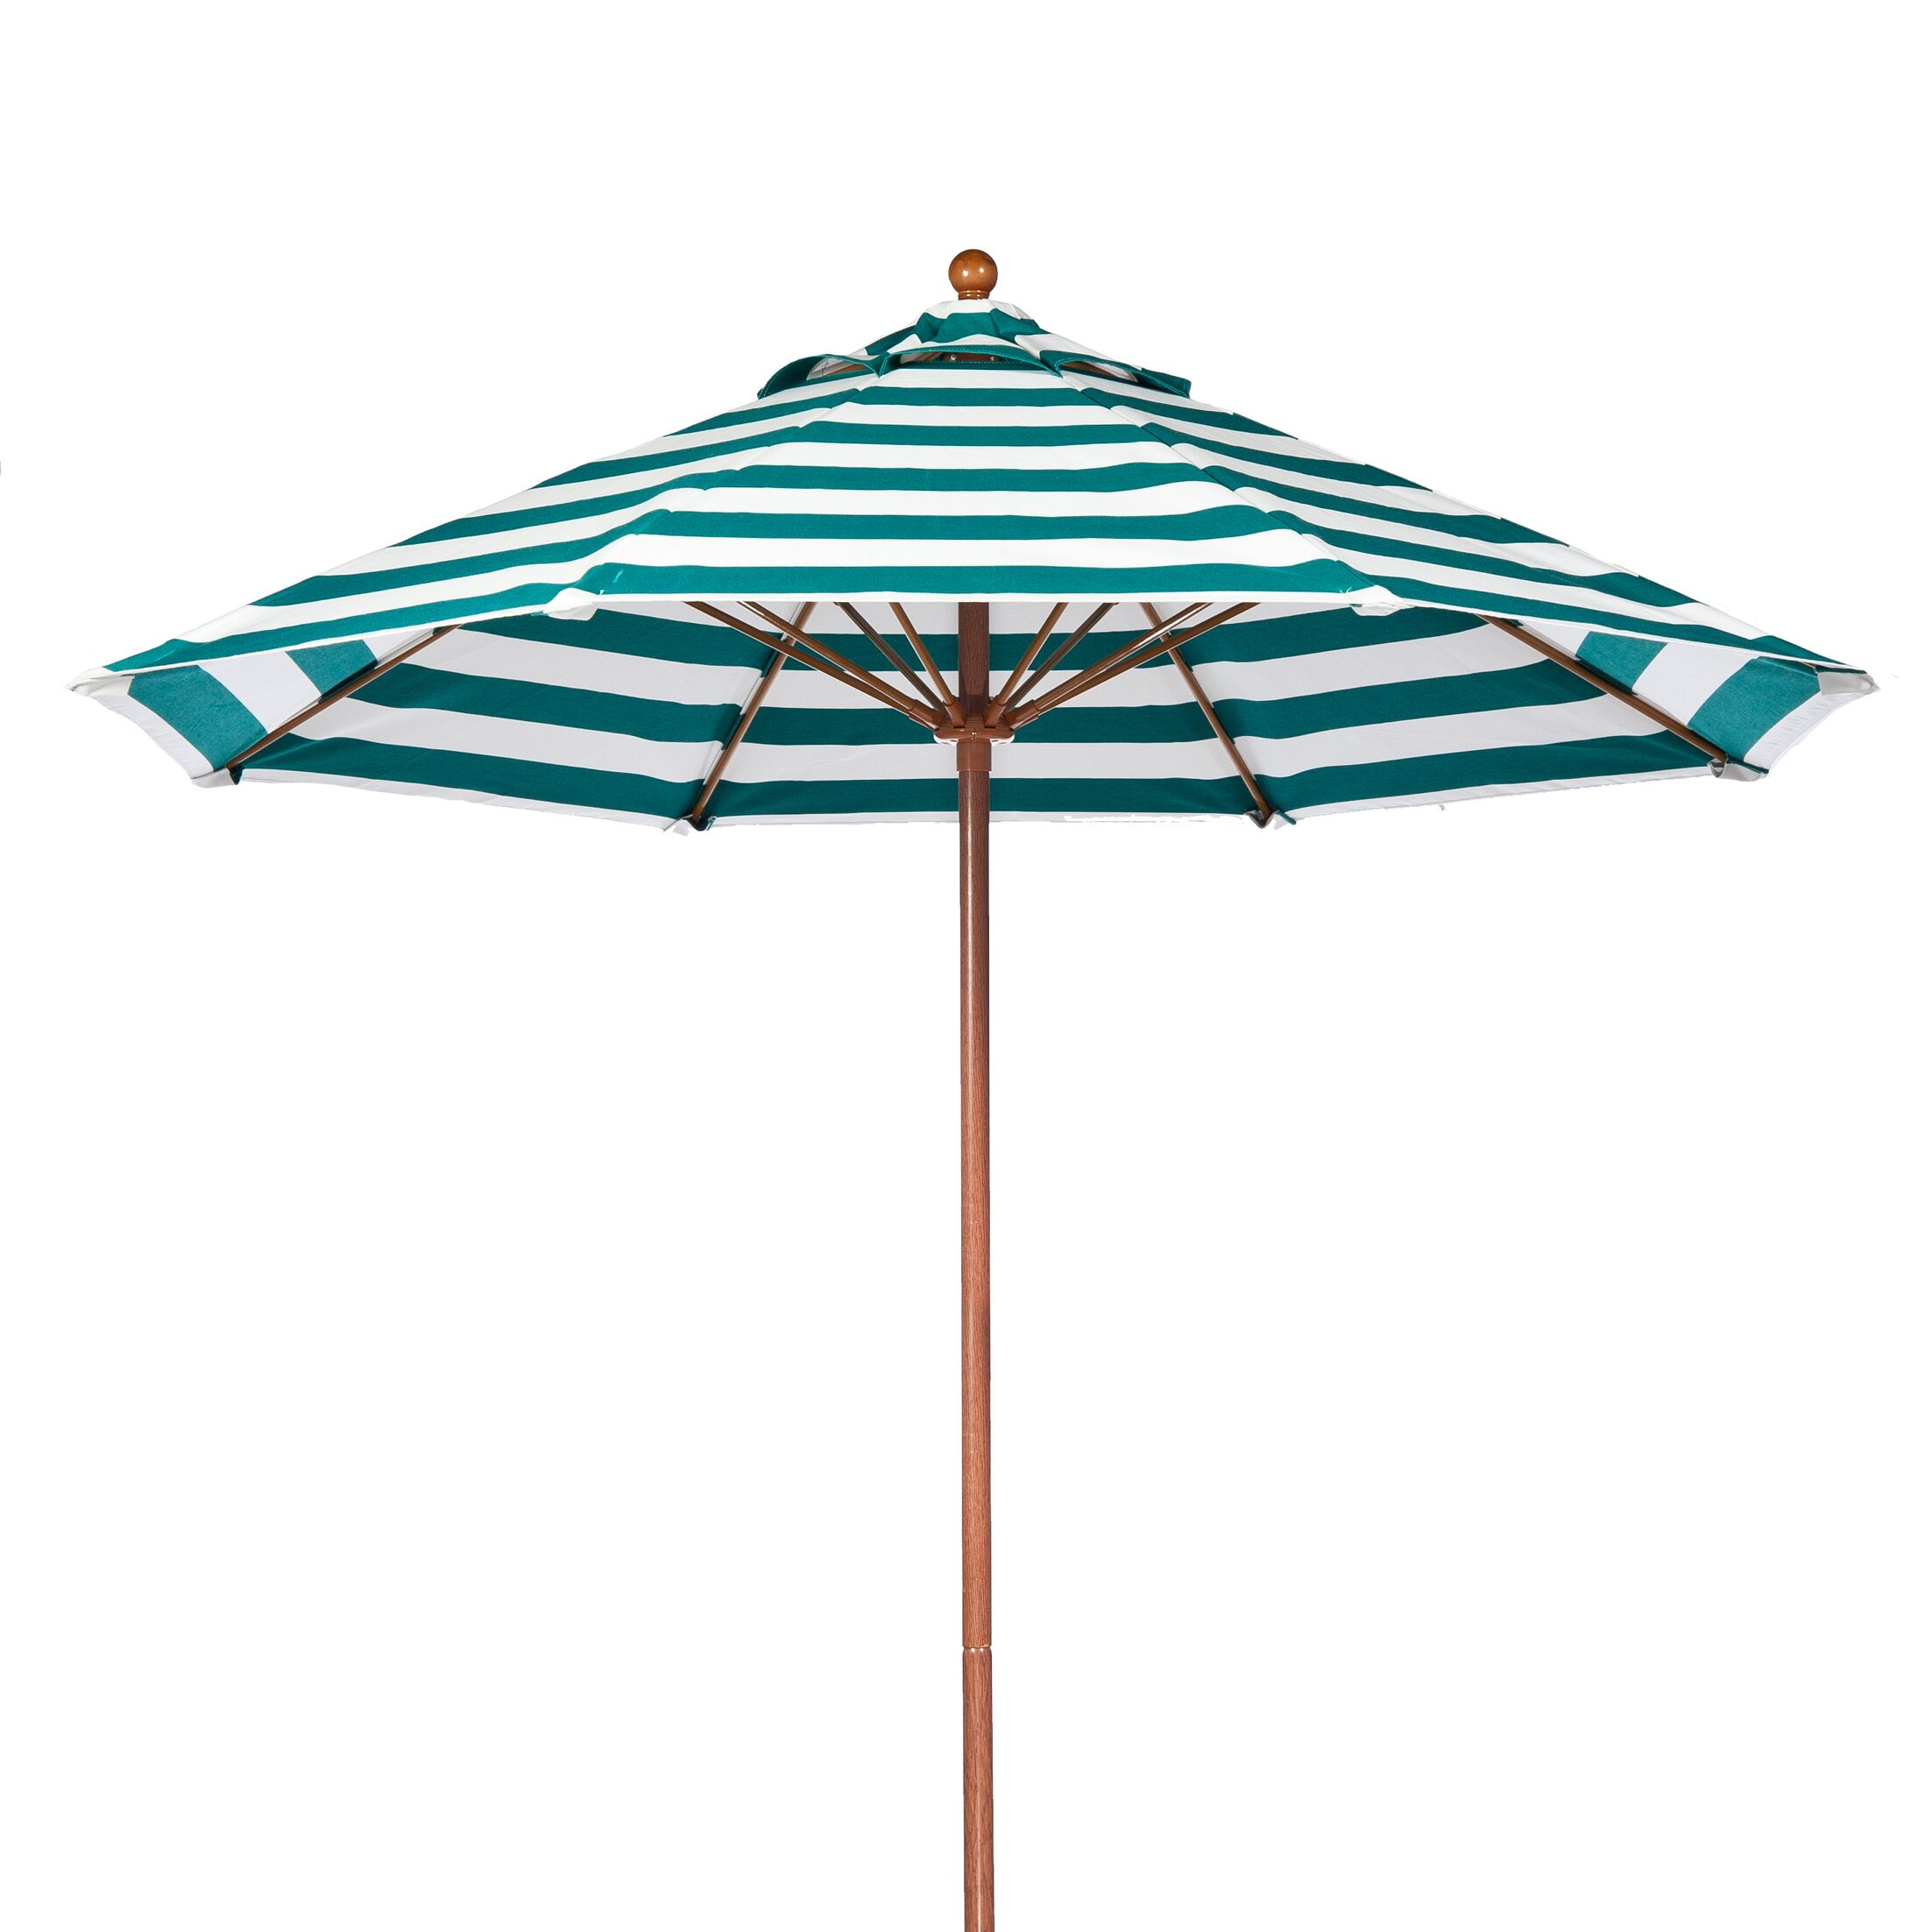 7.5' Market Umbrella Pole Type: Wood Grain Coated Aluminum Pole, Fabric: Teal and White Stripe